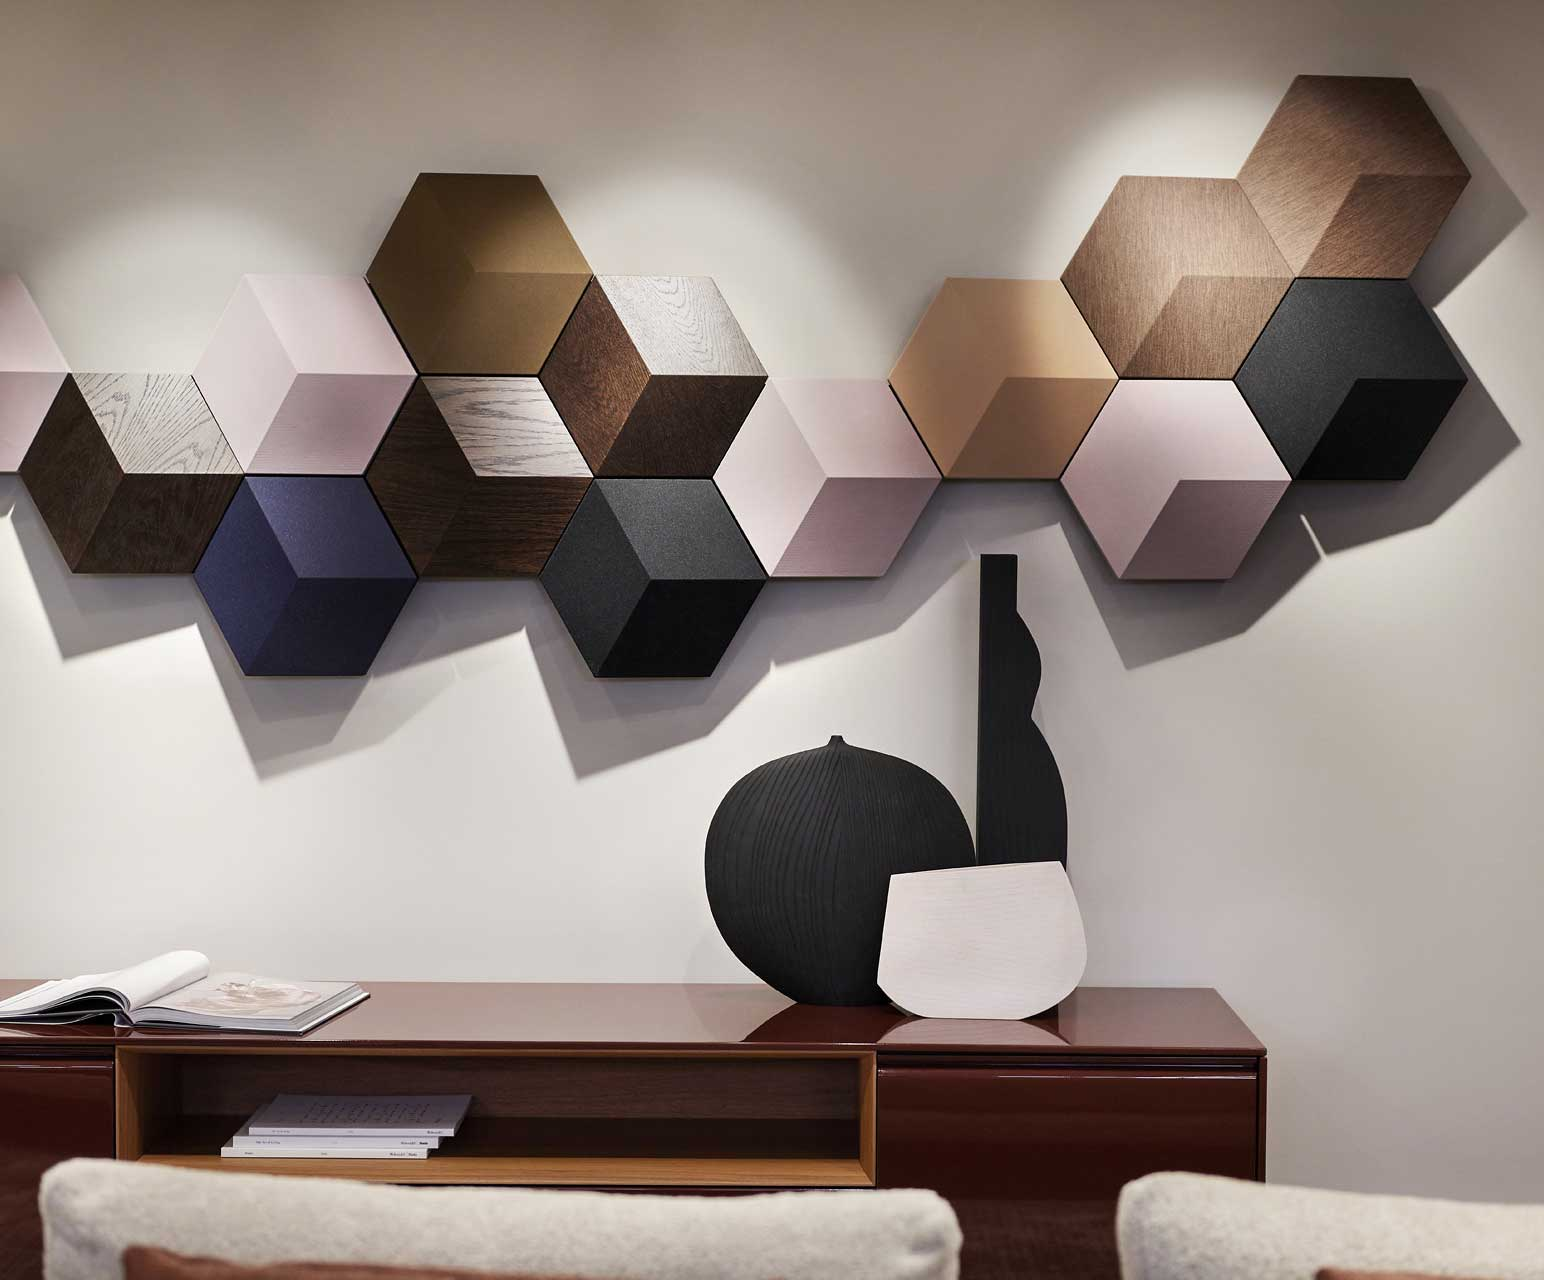 NEW BANG & OLUFSEN LIFESTYLE SHOWROOM DIALS UP THE STYLE WITH HELP FROM CASA DESIGN GROUP AND MOLTENI&C